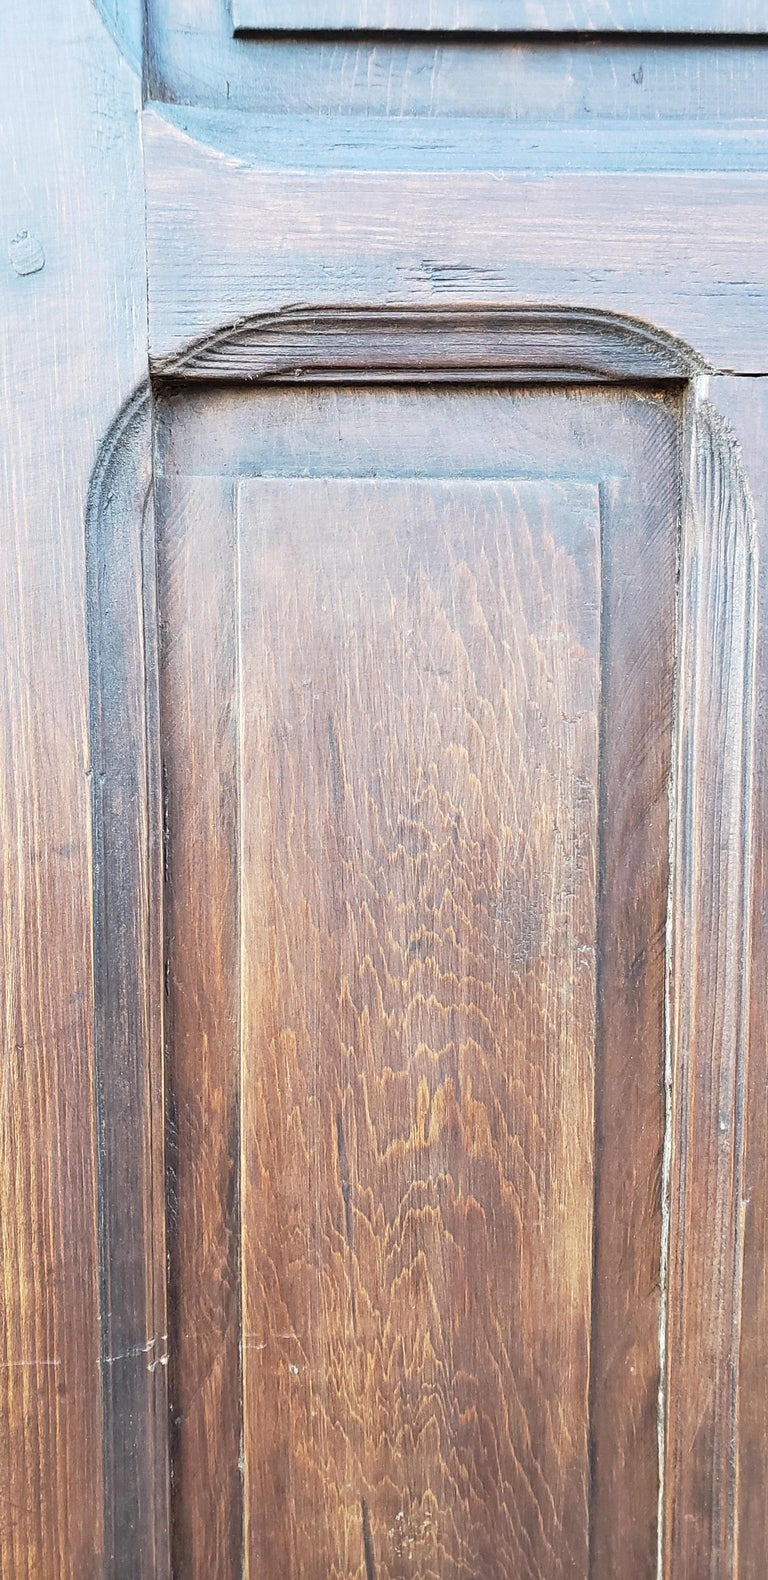 Double Panel Arched Moroccan Wooden Door, 23ND34 In Good Condition For Sale In Orlando, FL